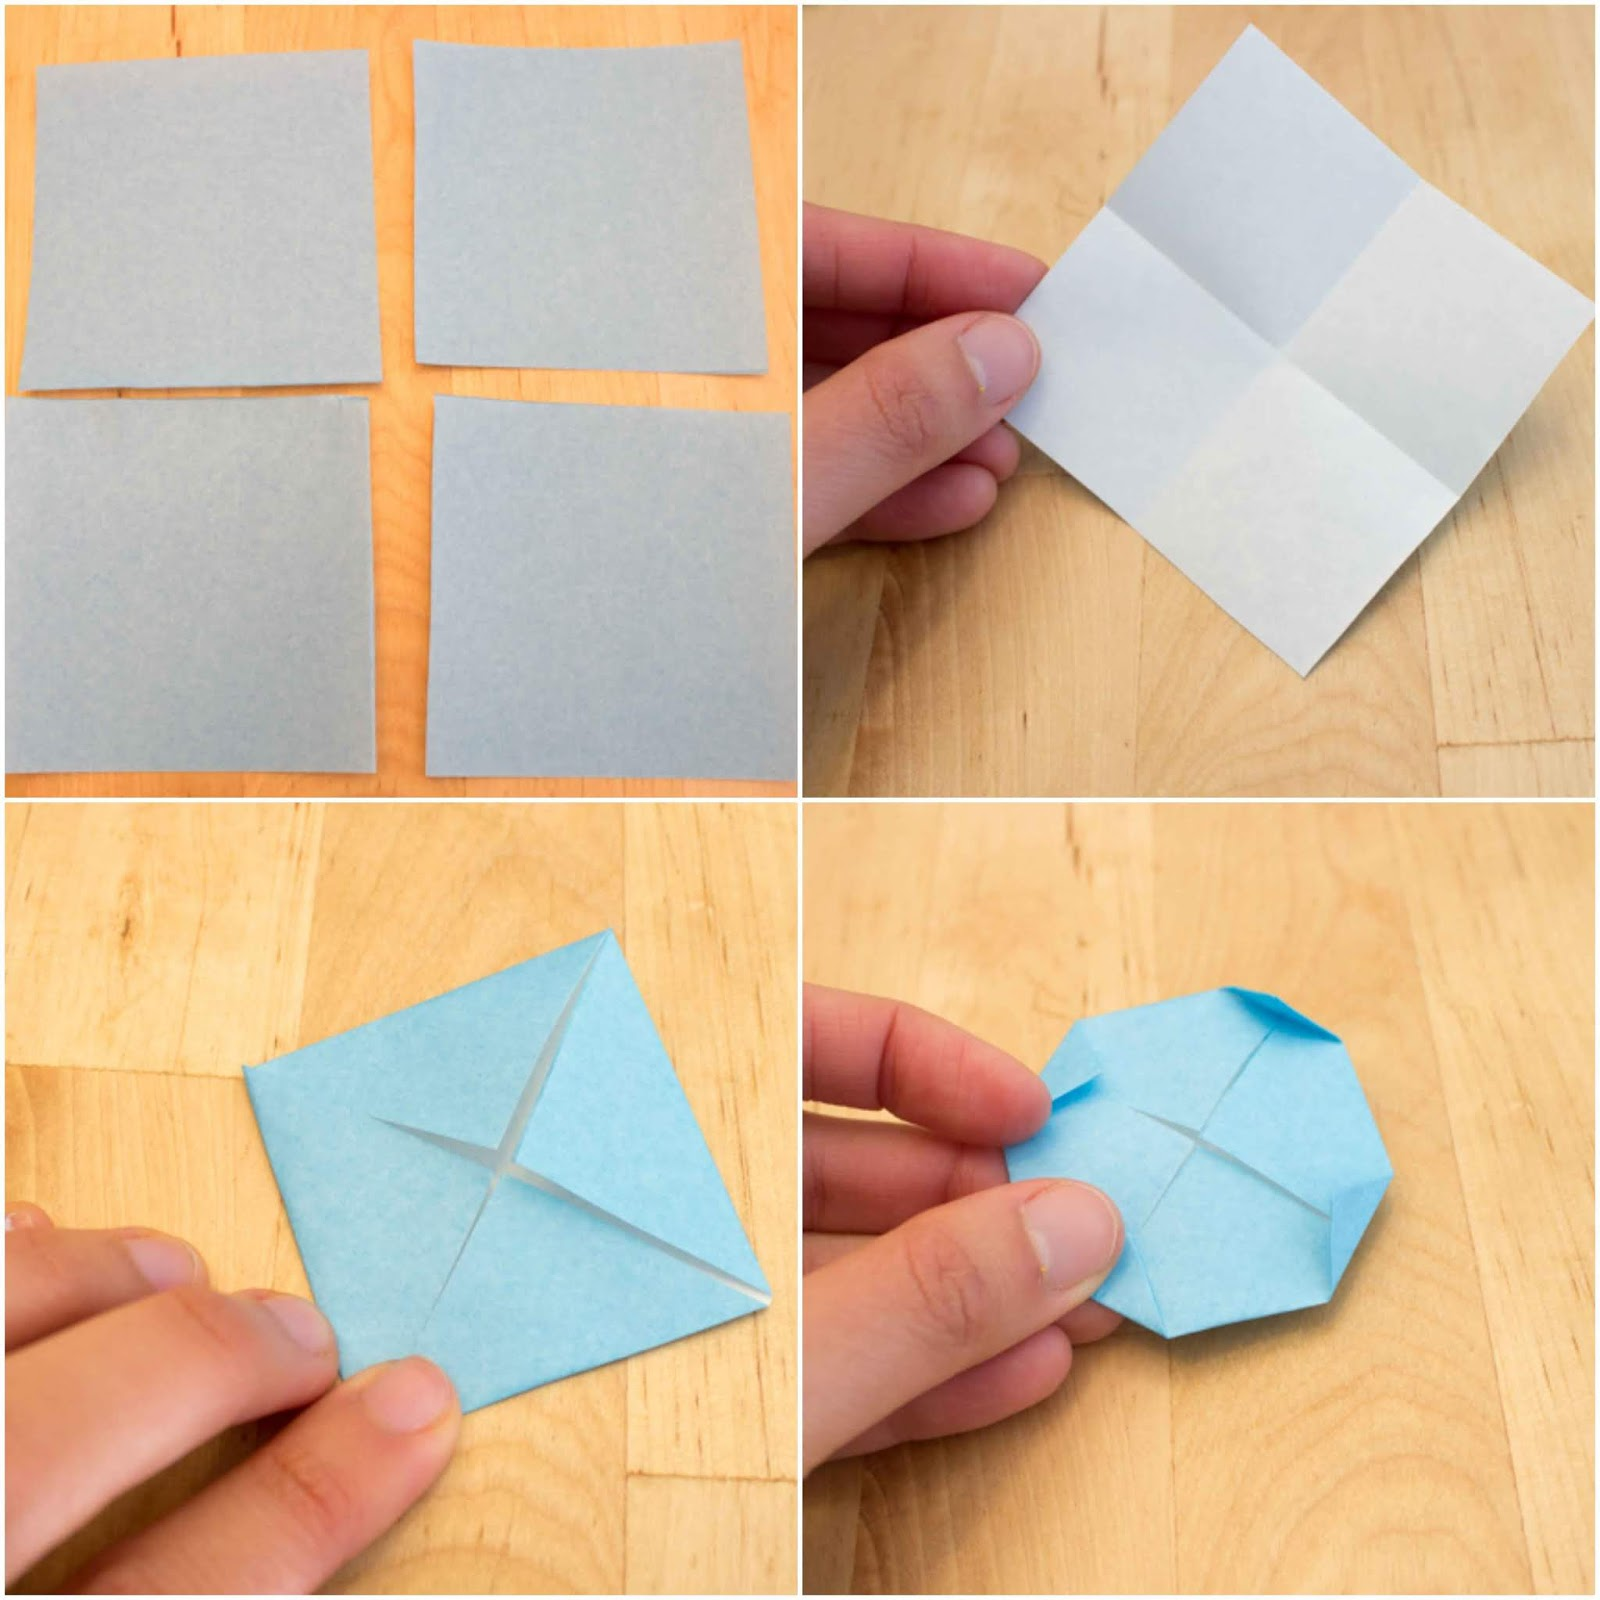 Squirtle for Xmas/Carapuce pour noël (POKEMON) - meloria ORIGAMI ... | 1600x1600